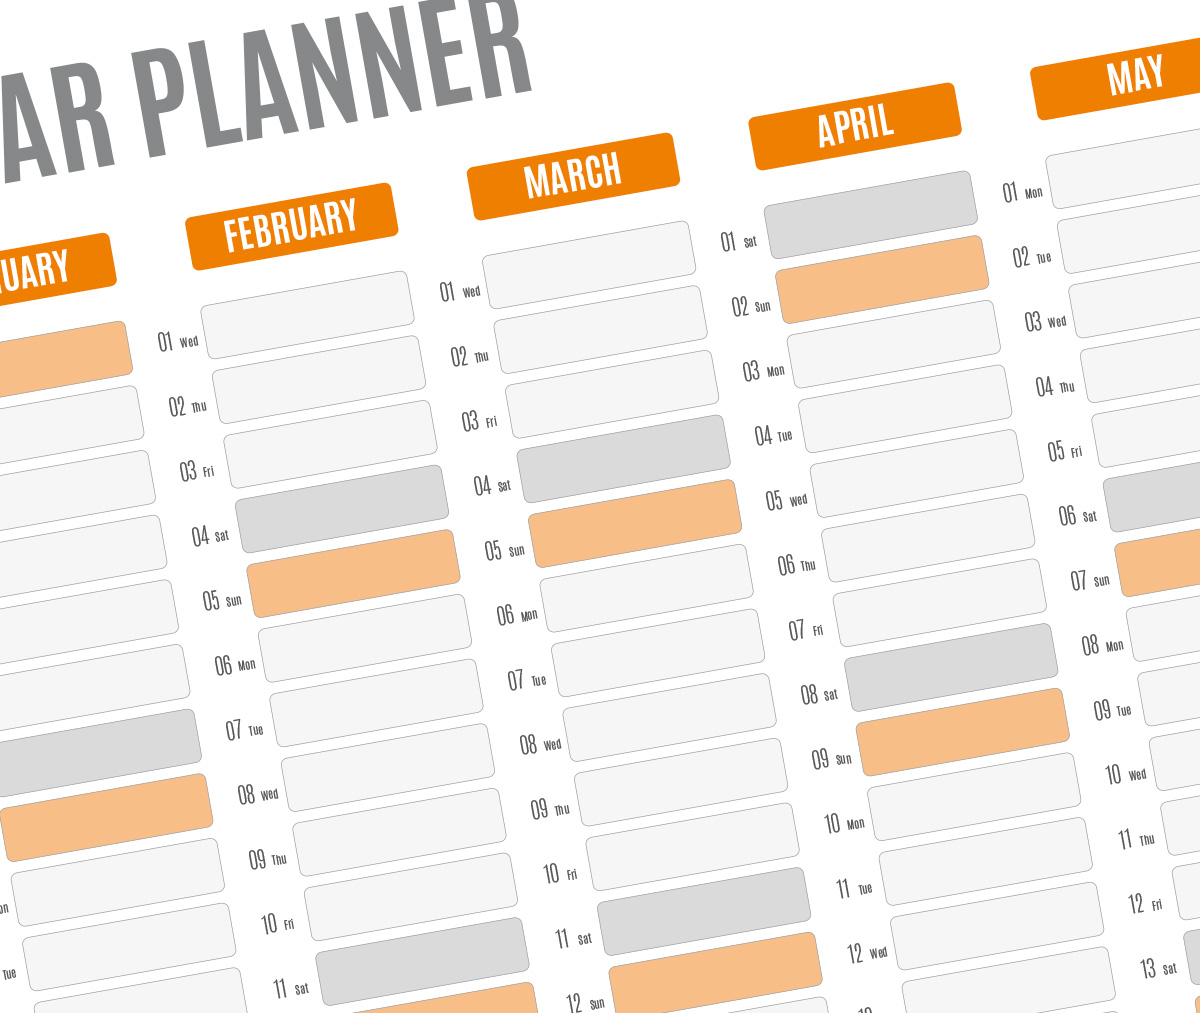 Year Planner Template Printable PDF Wall Agenda - Yearly planner template